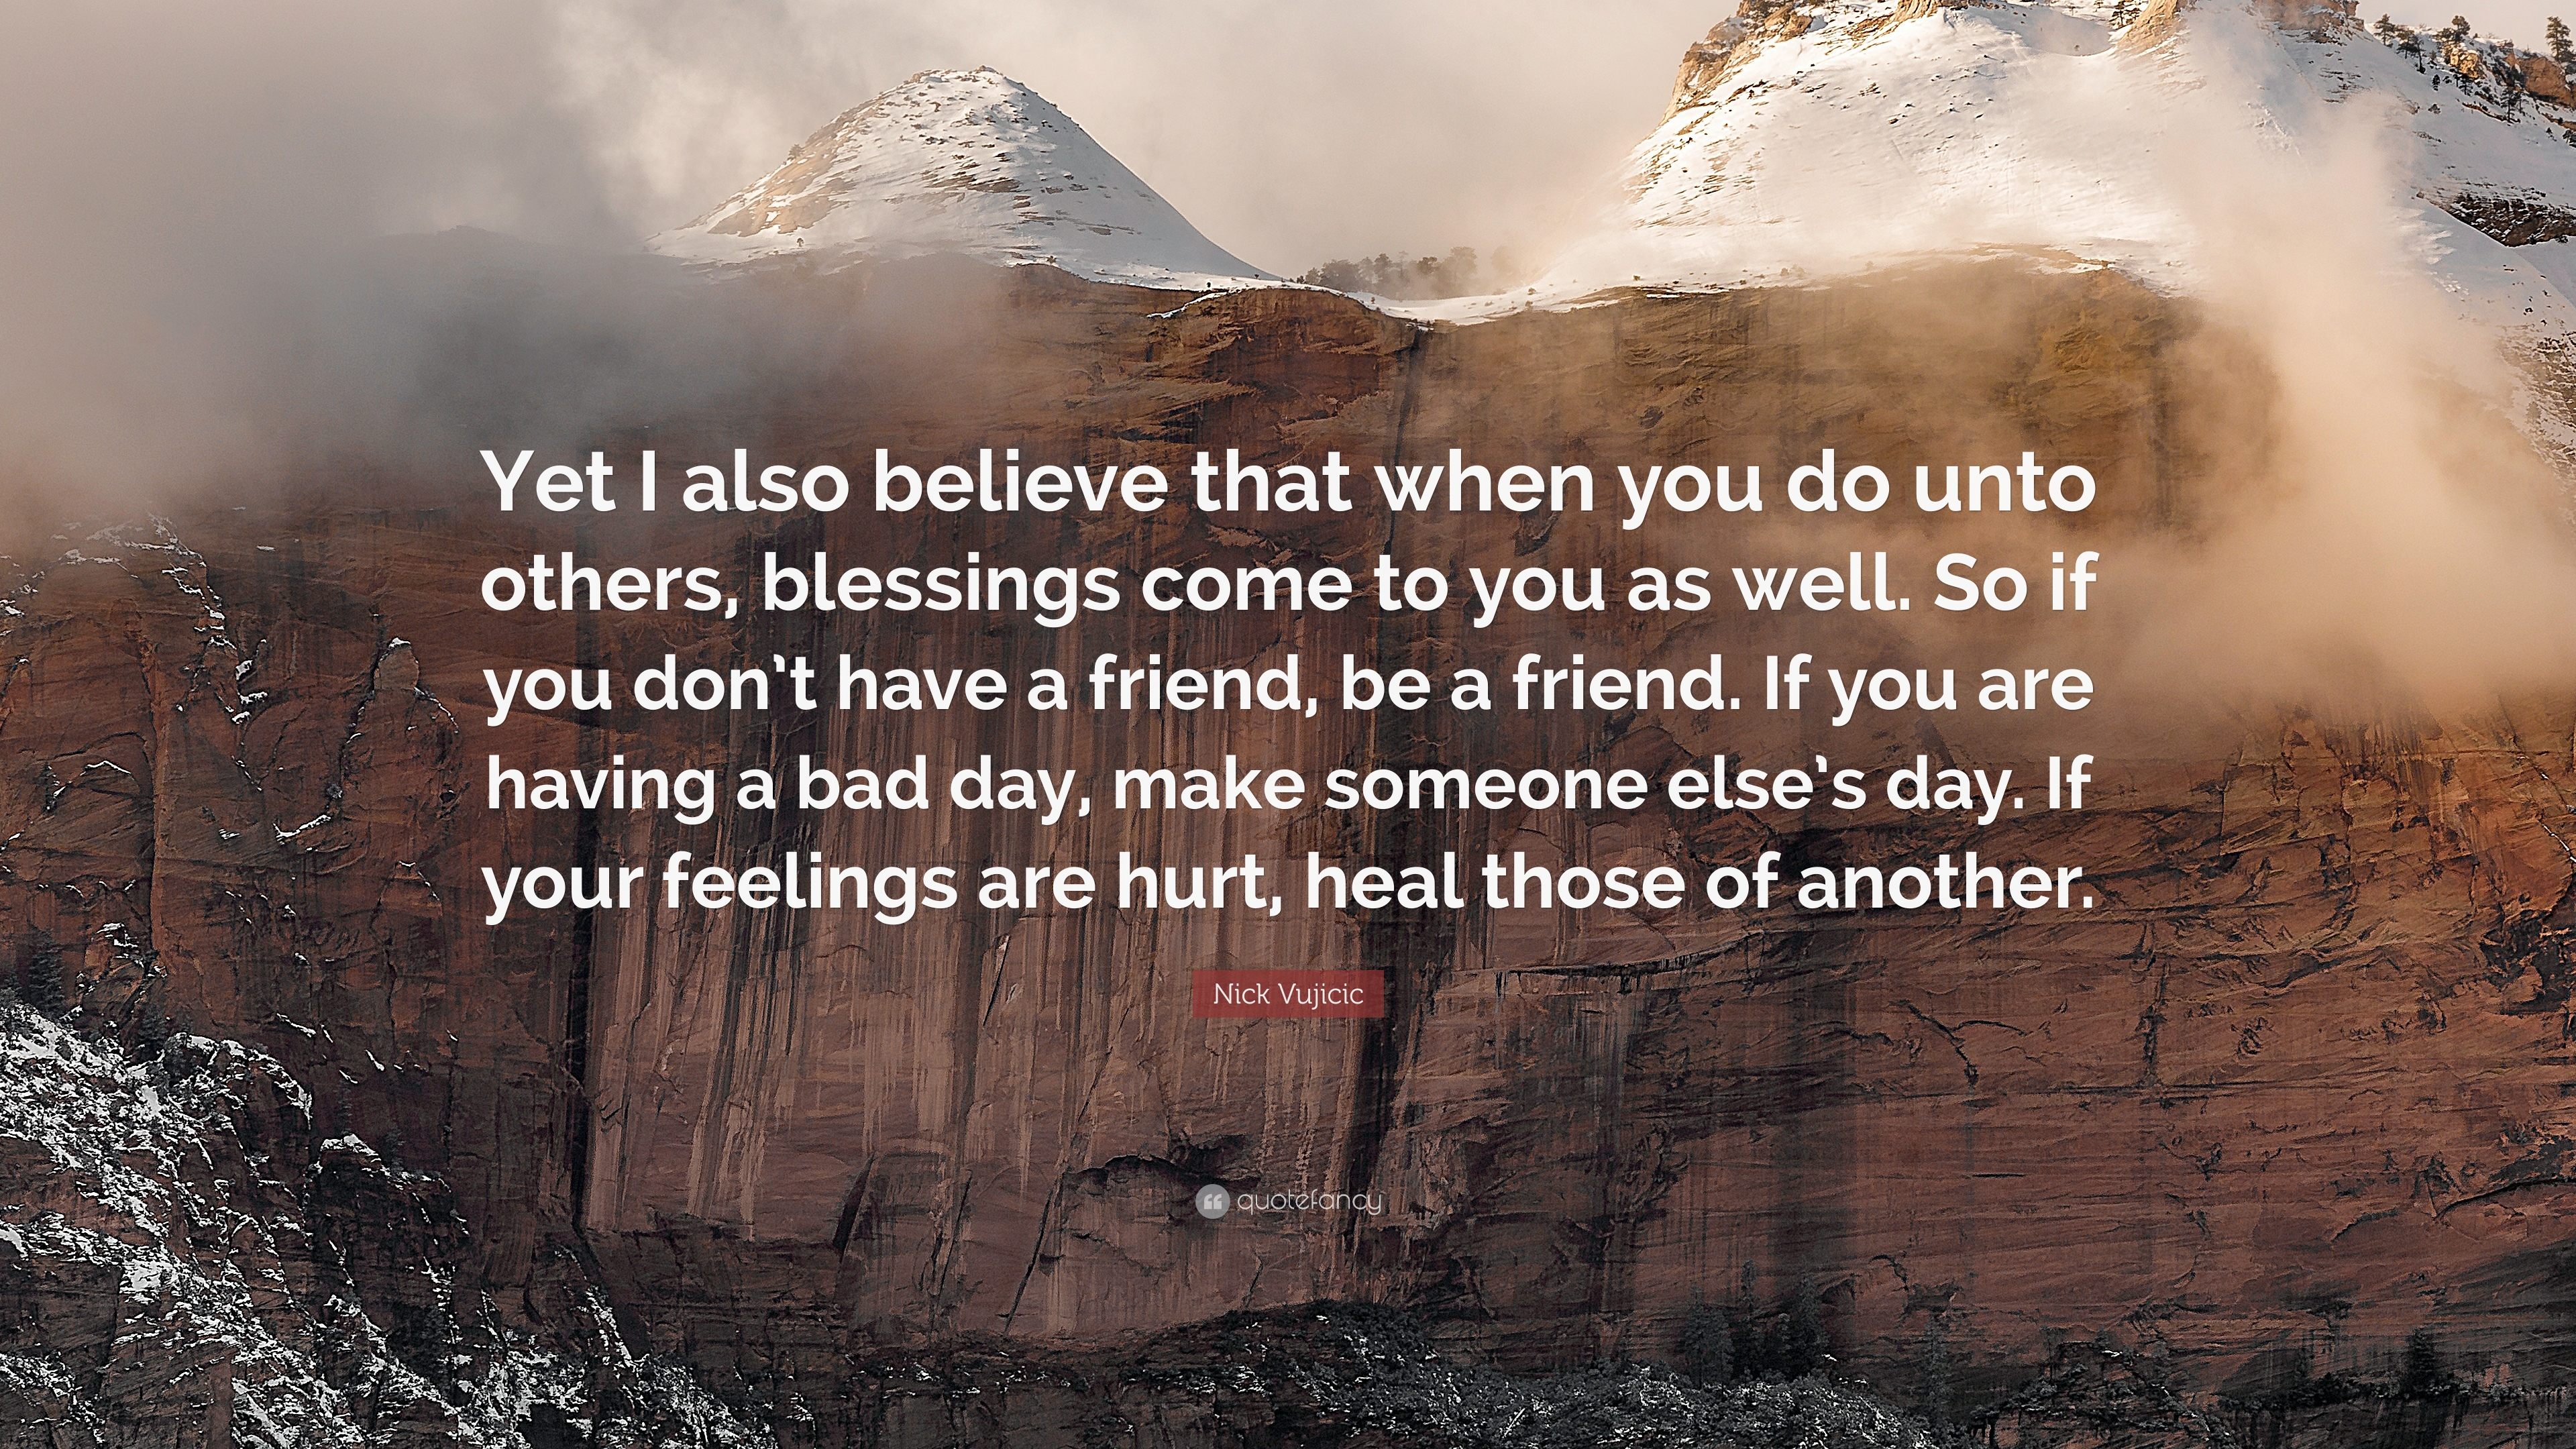 Nick Vujicic Quote Yet I Also Believe That When You Do Unto Others